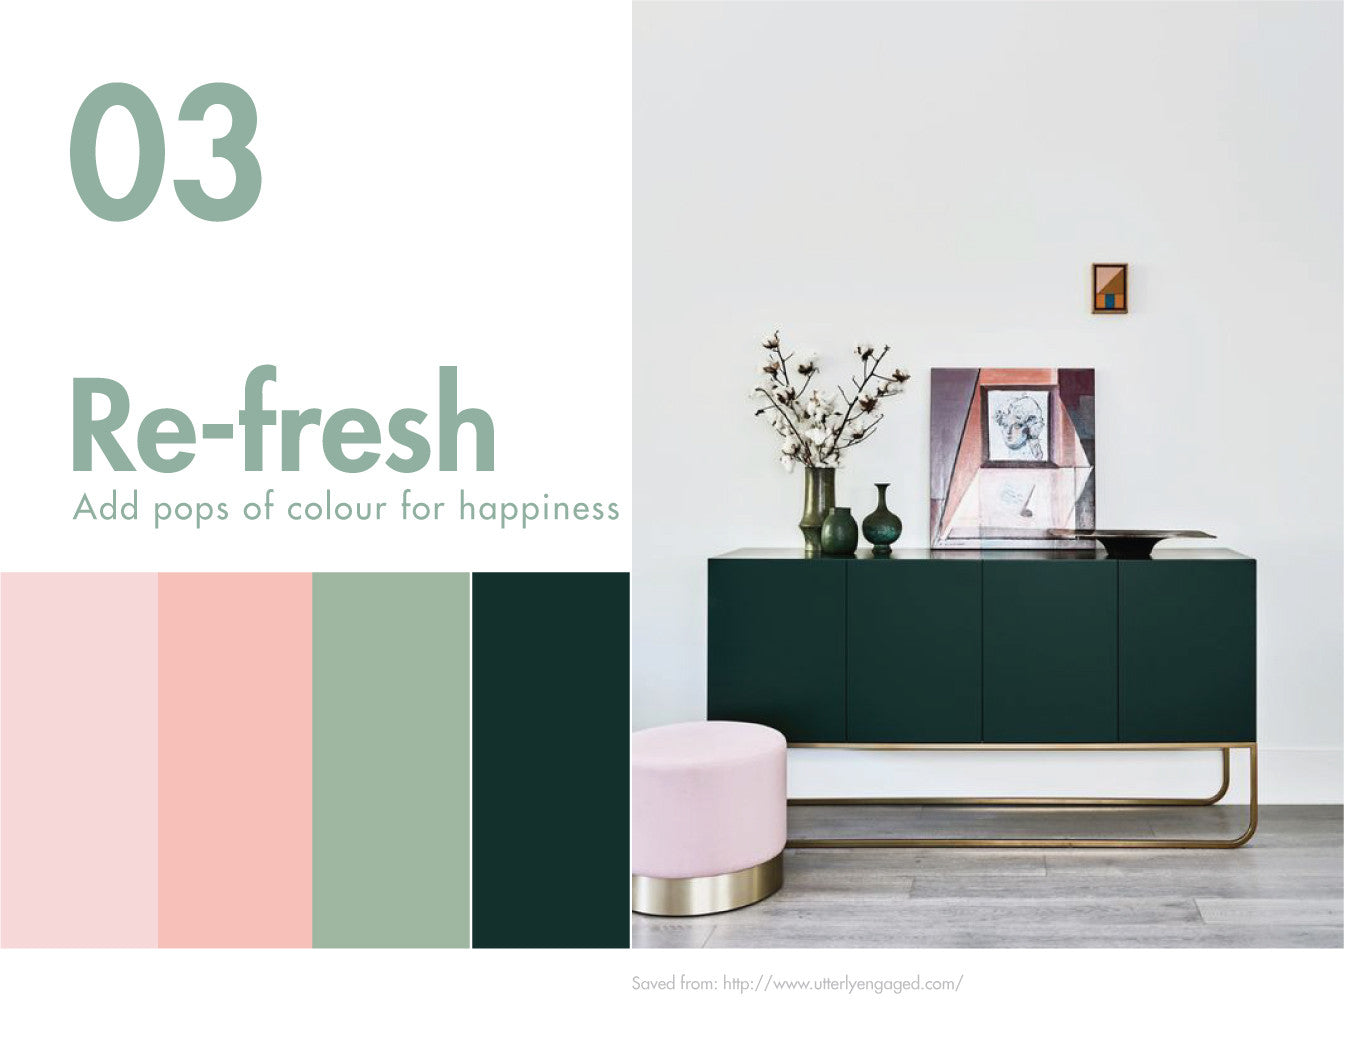 refresh/colour-for-the-home/beinspired/blog/lulasclan